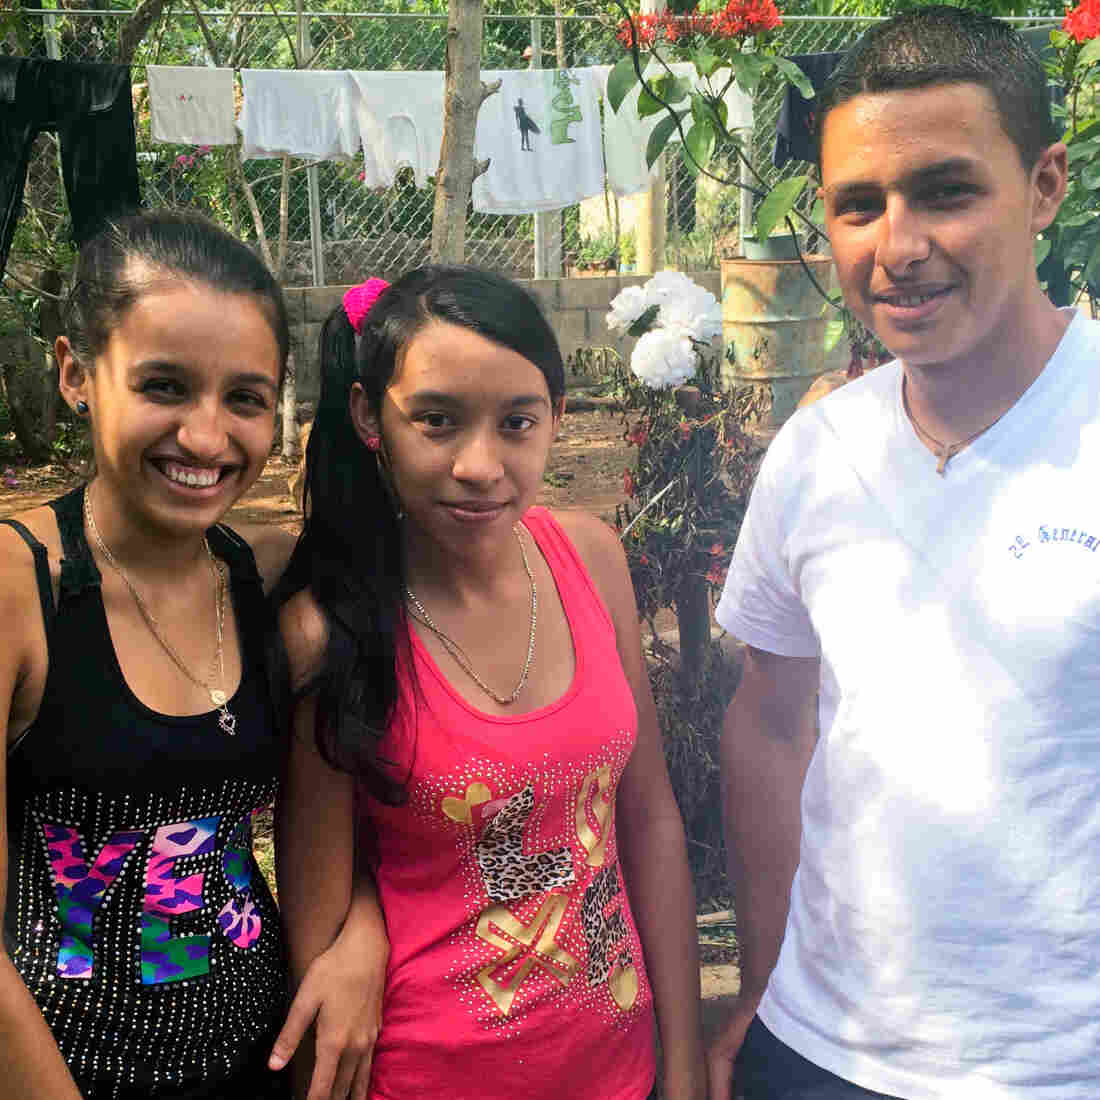 Marta Elsie Leveron, 19, (left) and her brother Freddy David Leveron, 18, have not seen their father since he left El Savador to work in California in 1999. A new U.S. program allows families to reunite if one parent is a legal U.S. resident. The girl in the middle is Liliana Beatriz Leveron, 16, a cousin of the other two. Her parents are in the U.S. and she's seeking to reunite with them as well.